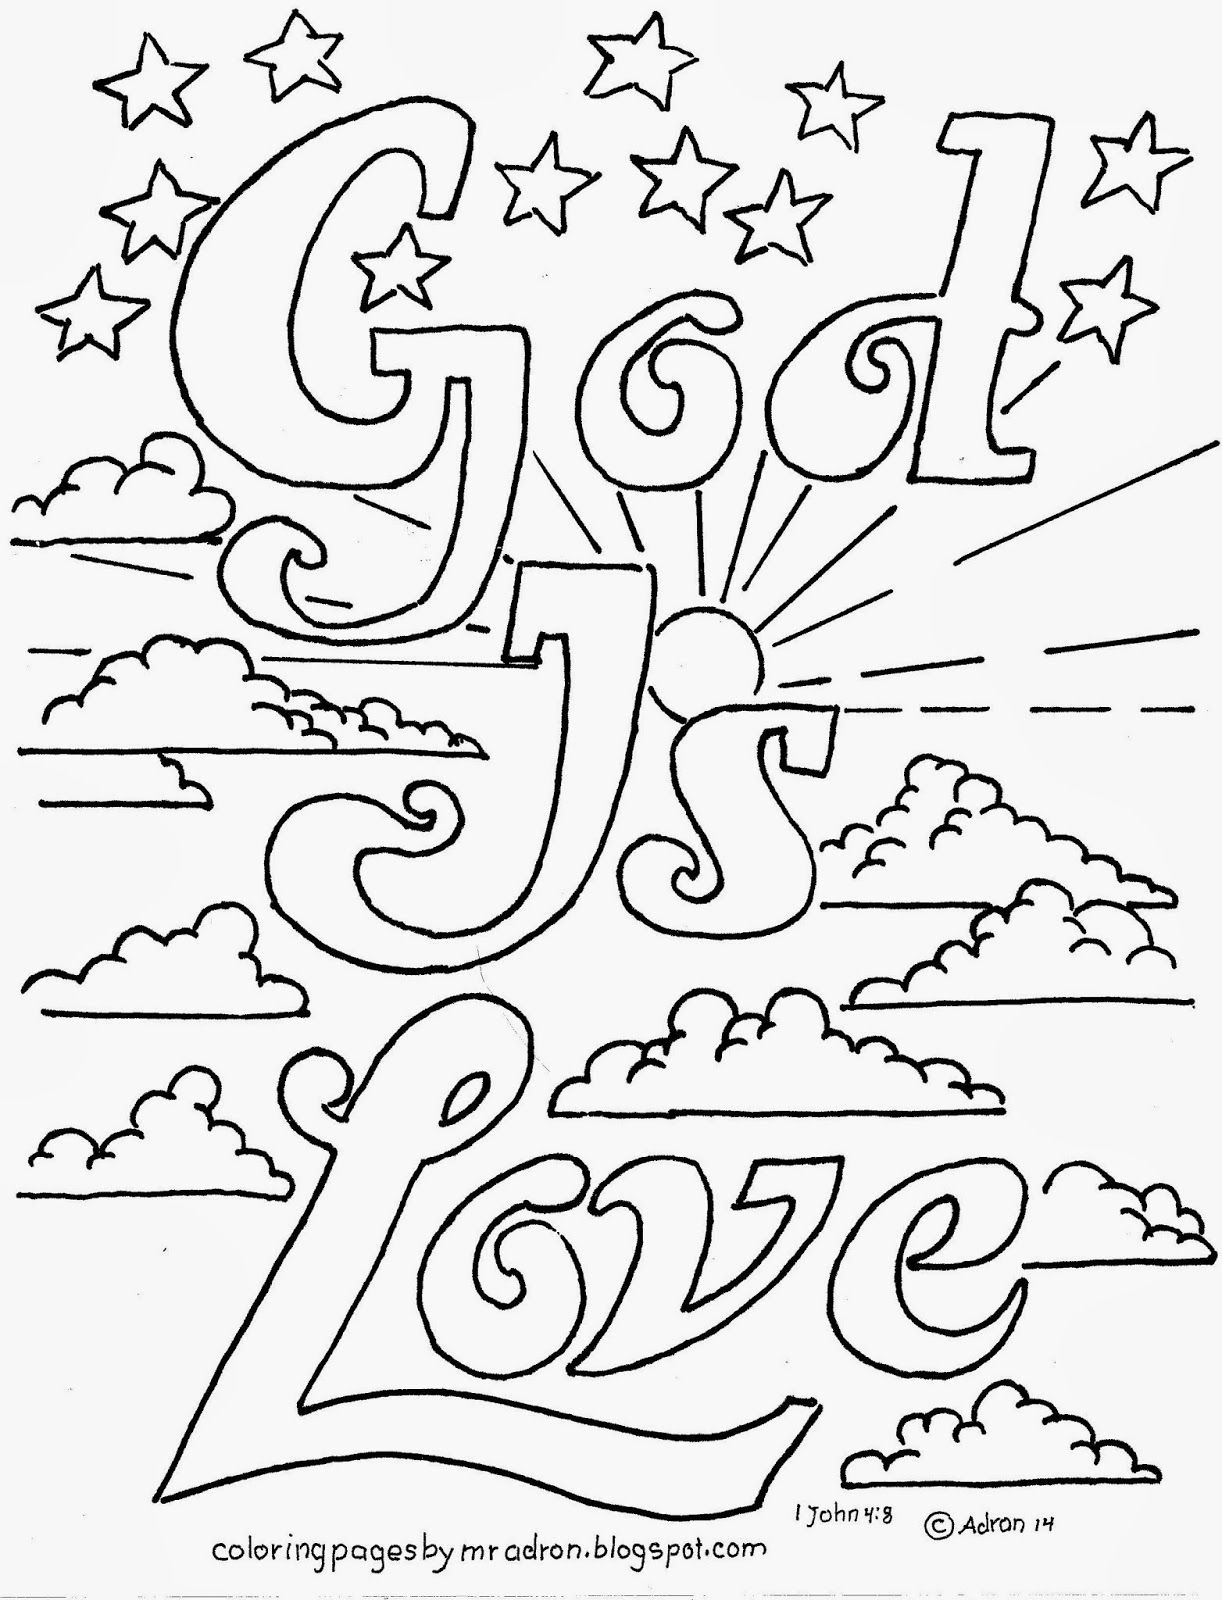 Coloring pages for preschoolers on salavation - Coloring Pages For Kids By Mr Adron God Is Love Printable Free Kid S